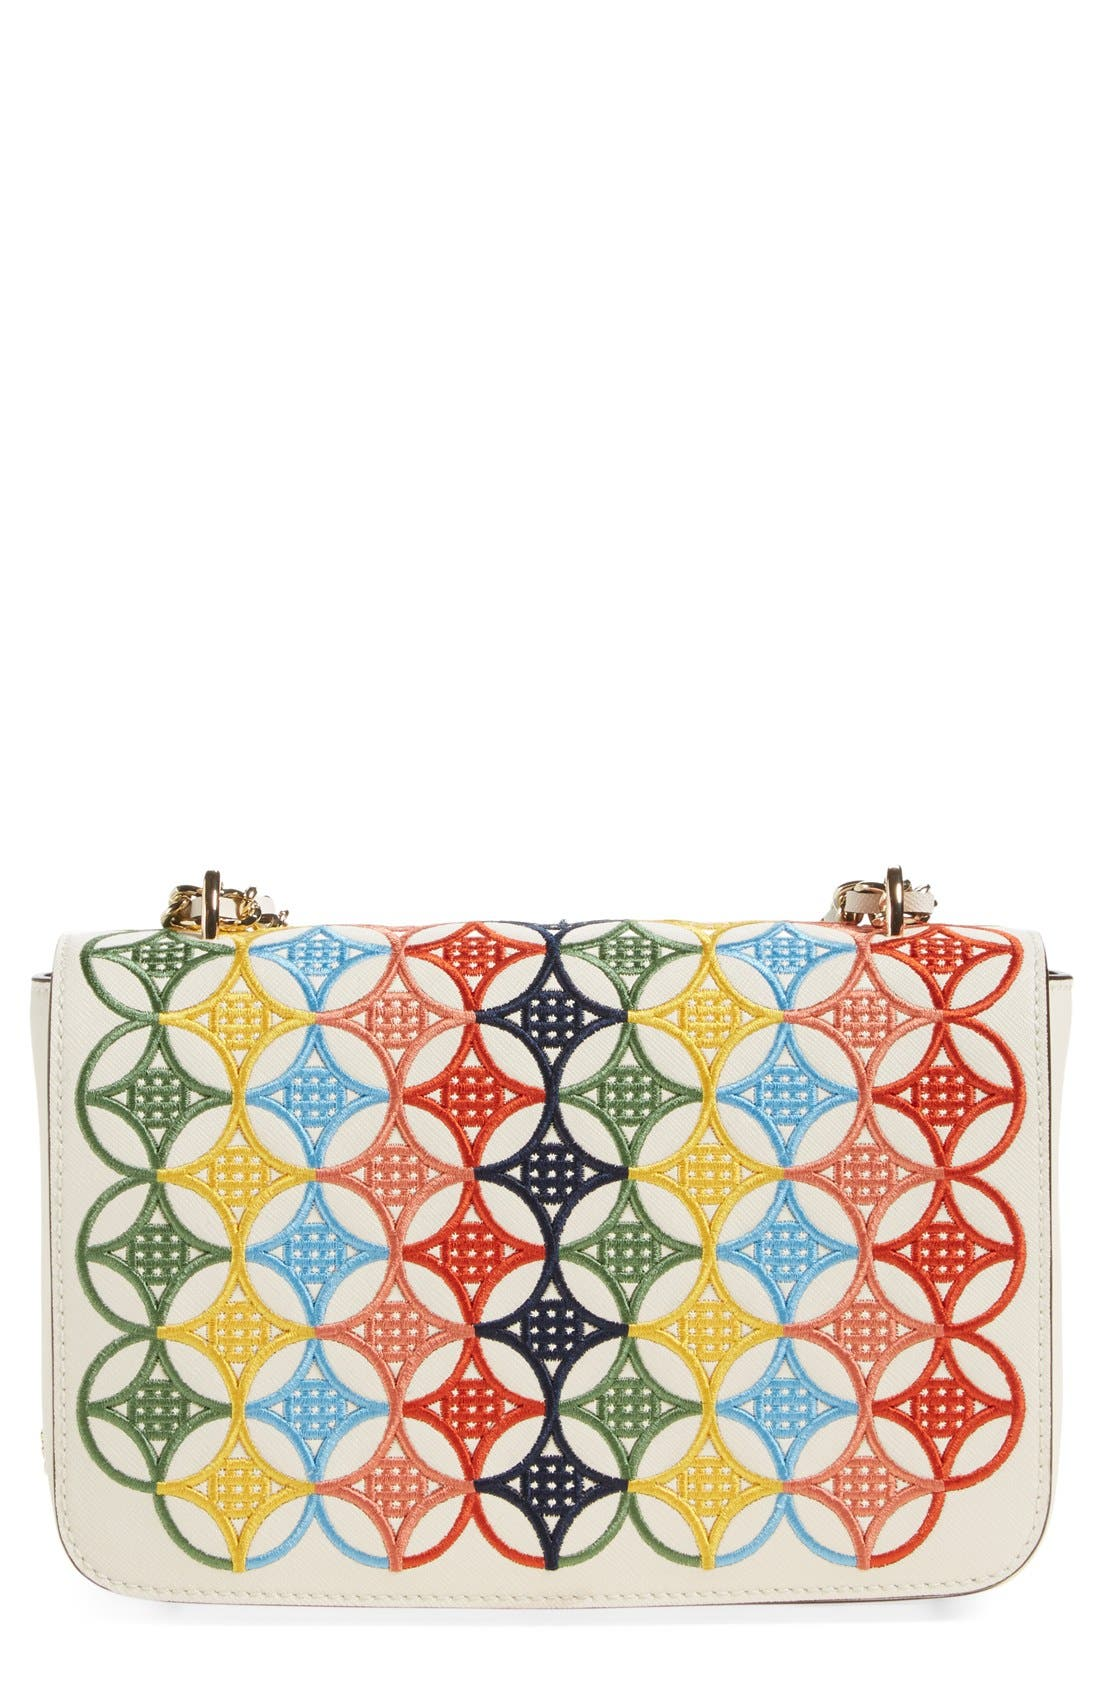 Alternate Image 1 Selected - Tory Burch 'Robinson' Embroidered Shoulder Bag